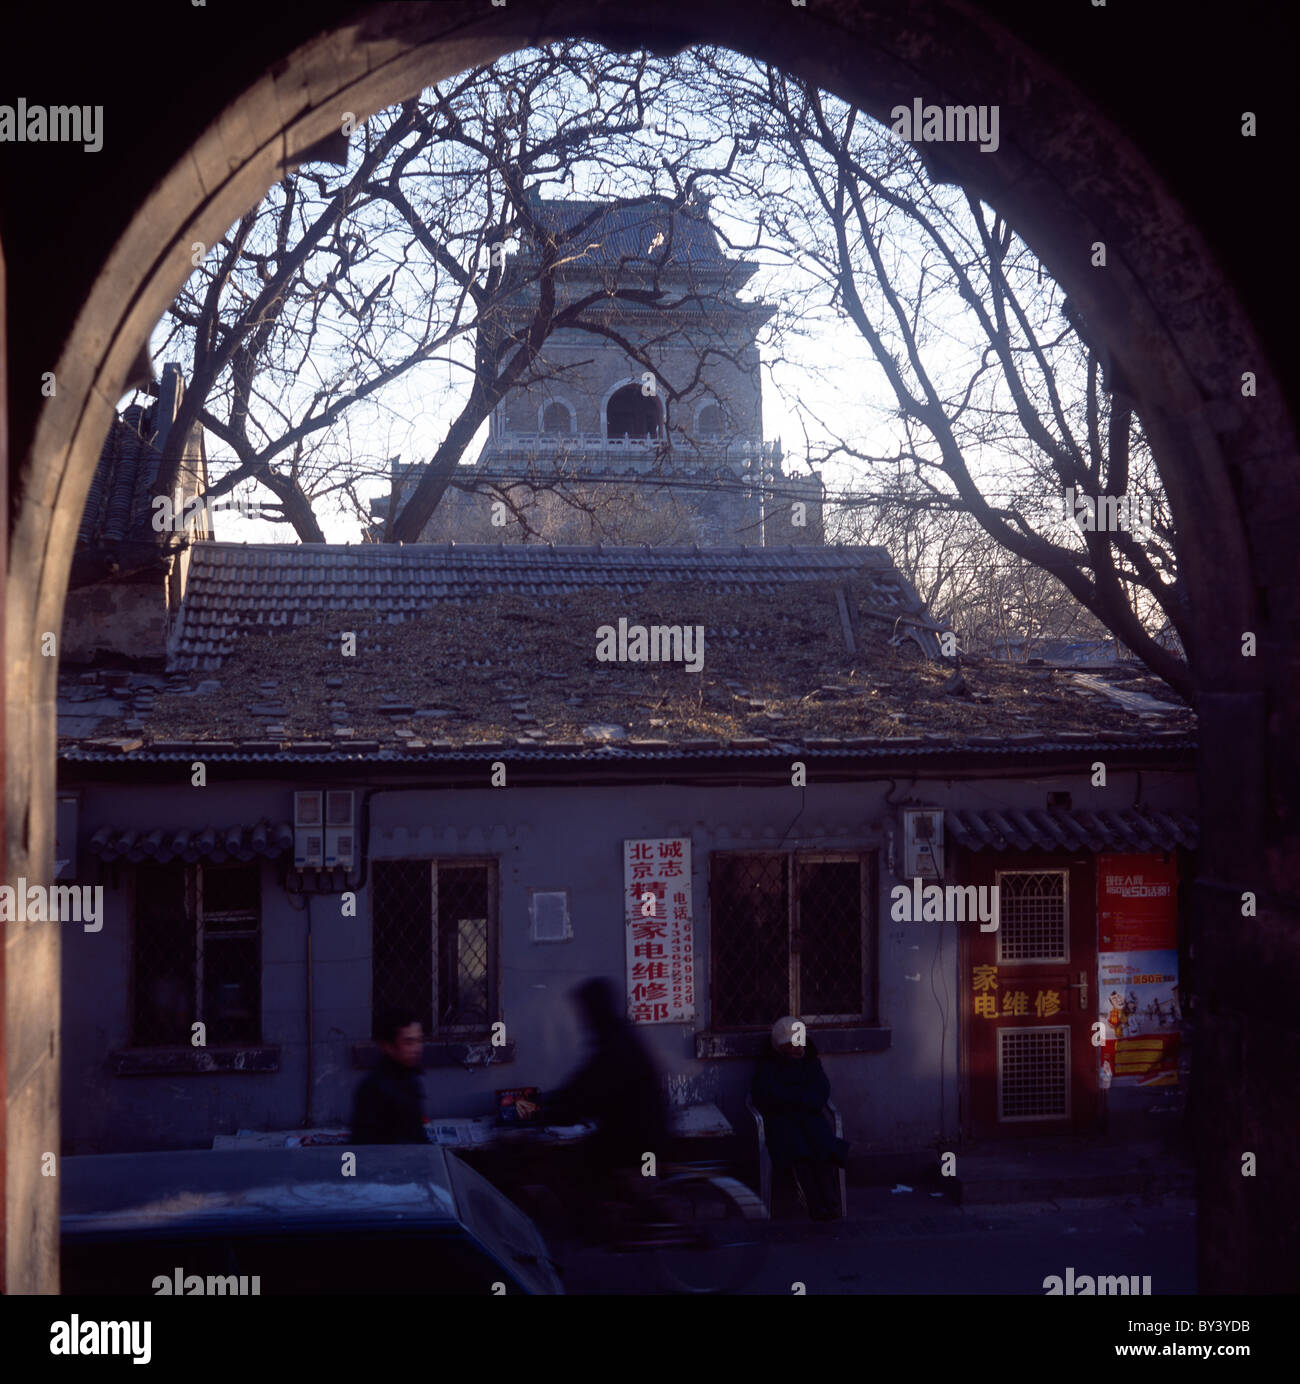 View of Bell Tower from an ancient temple in central Hutong area in Beijing, China.15-Jan-2011 - Stock Image